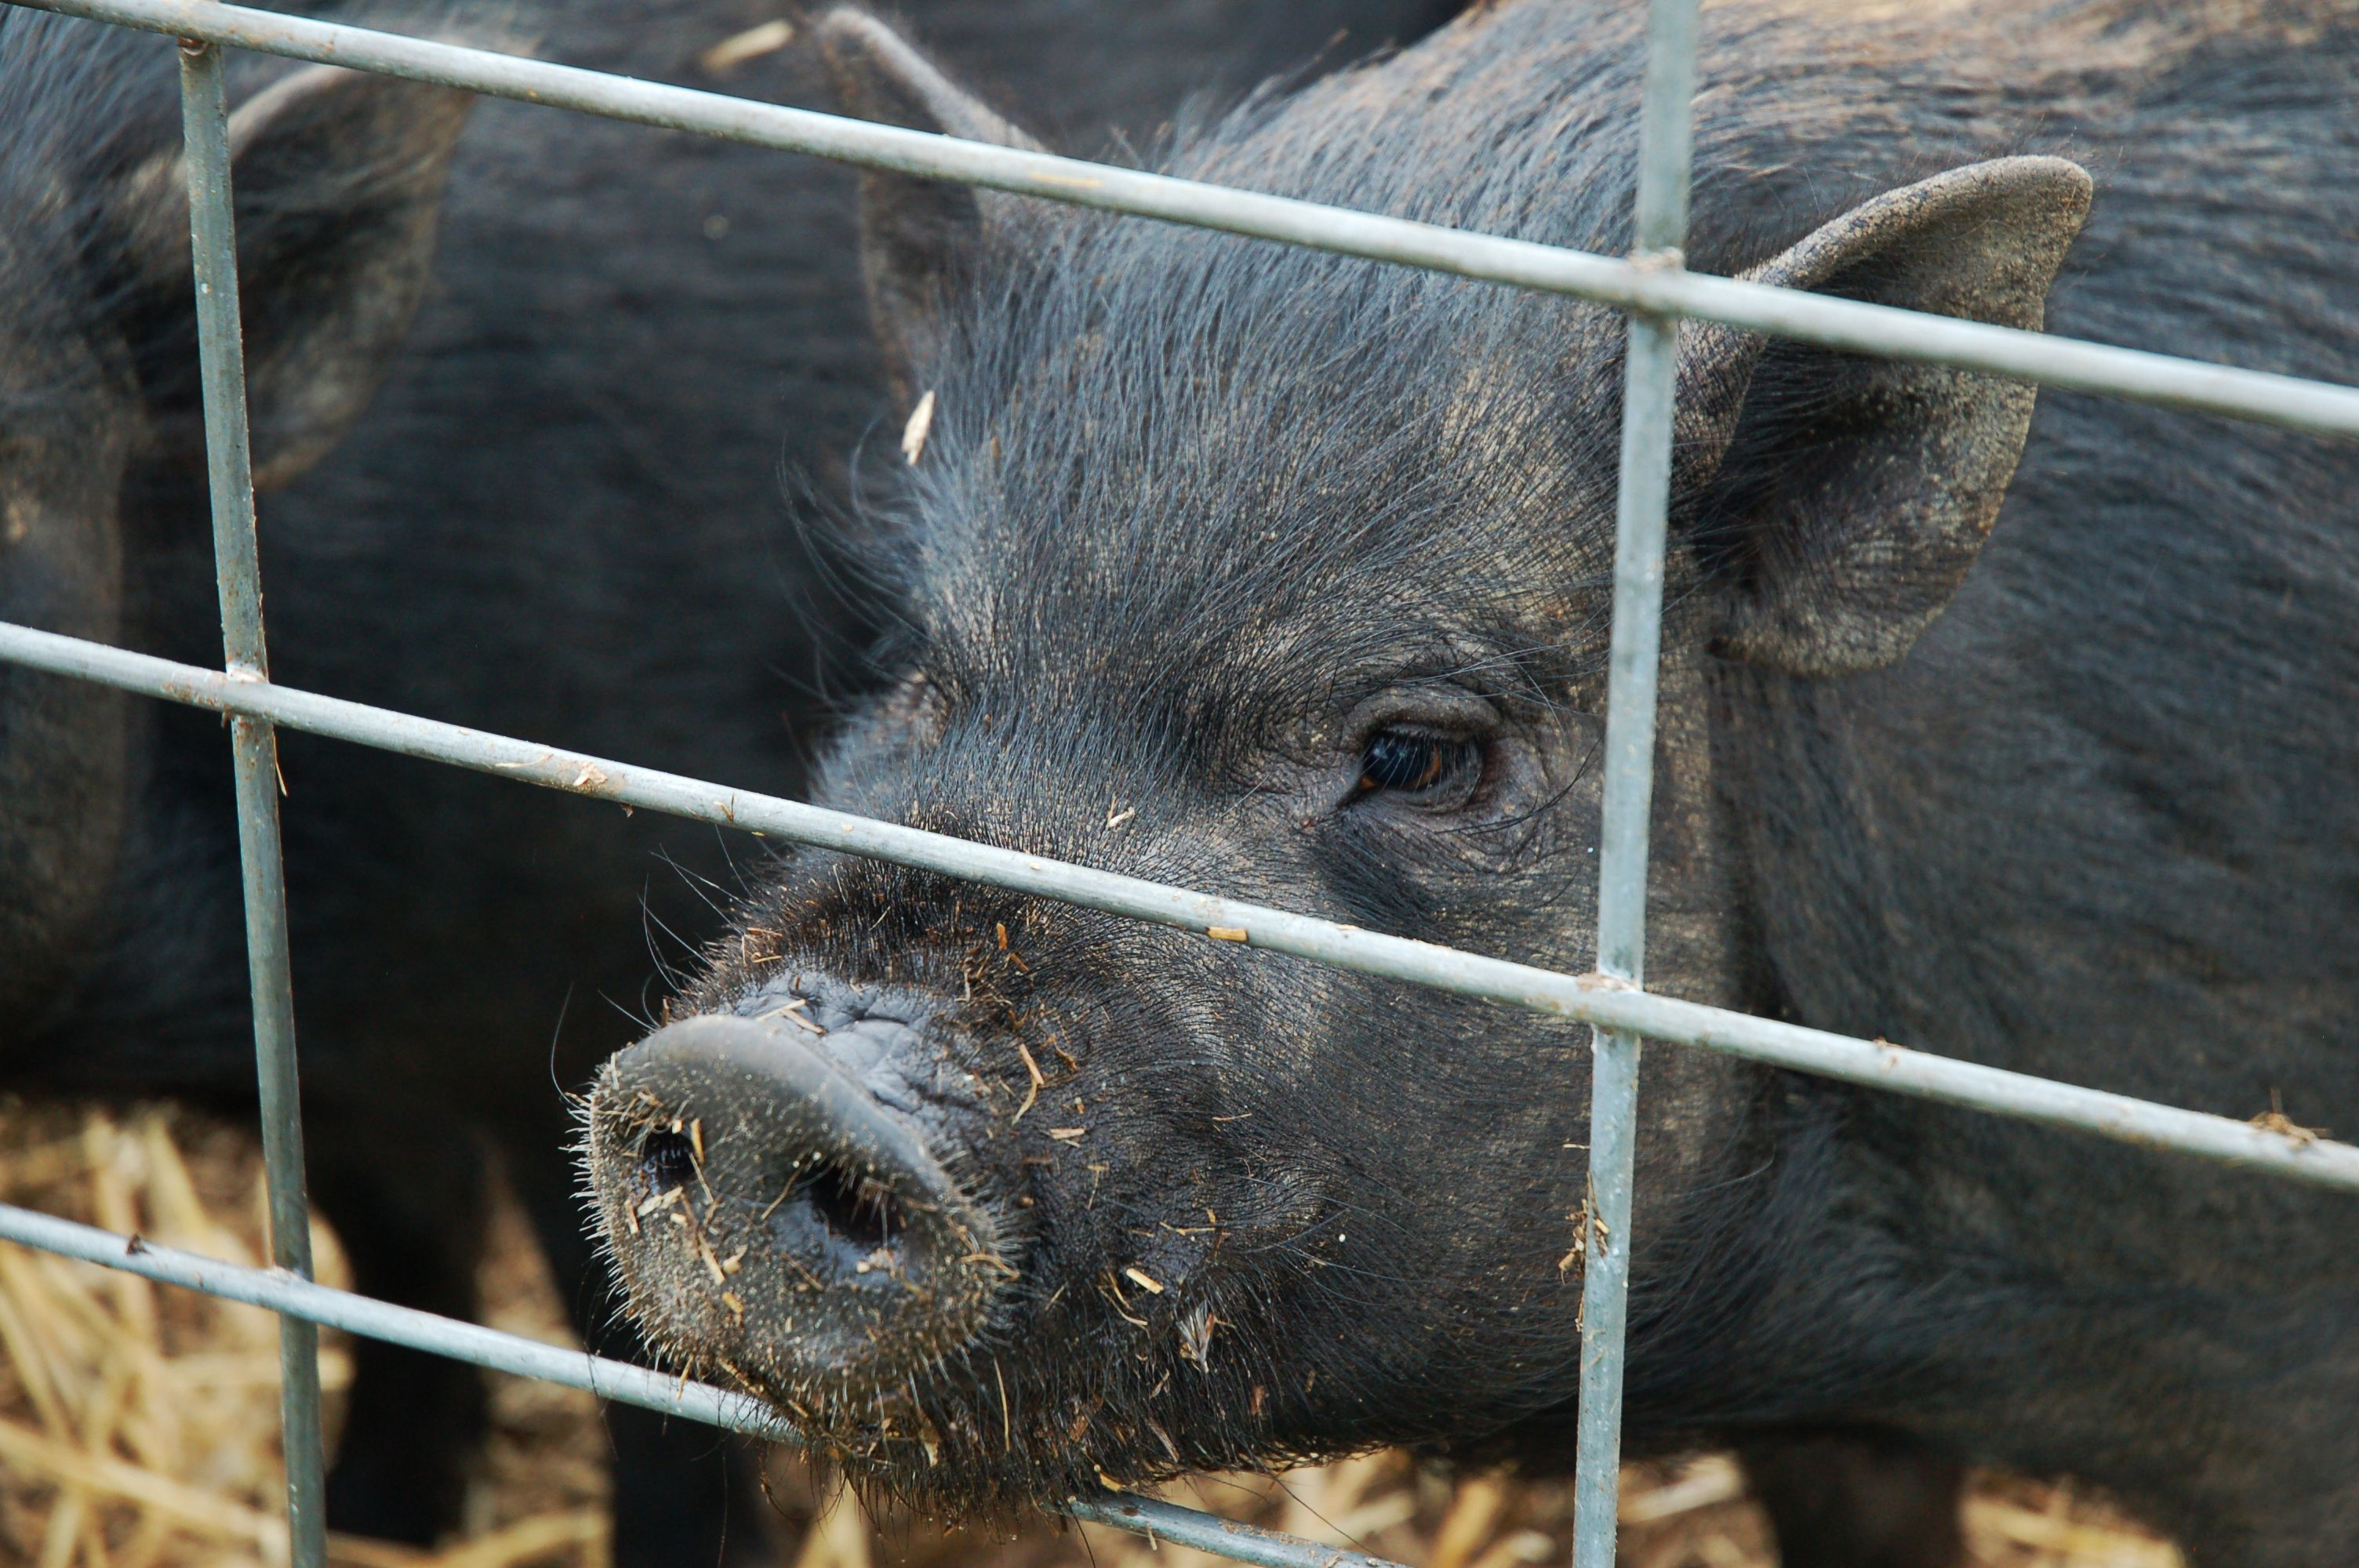 Feed the pigs at Windy Hill Orchard & Cidery in York, SC | #yorkcounty #agandarttour #agriculture #livestock #pigs #thingstodo